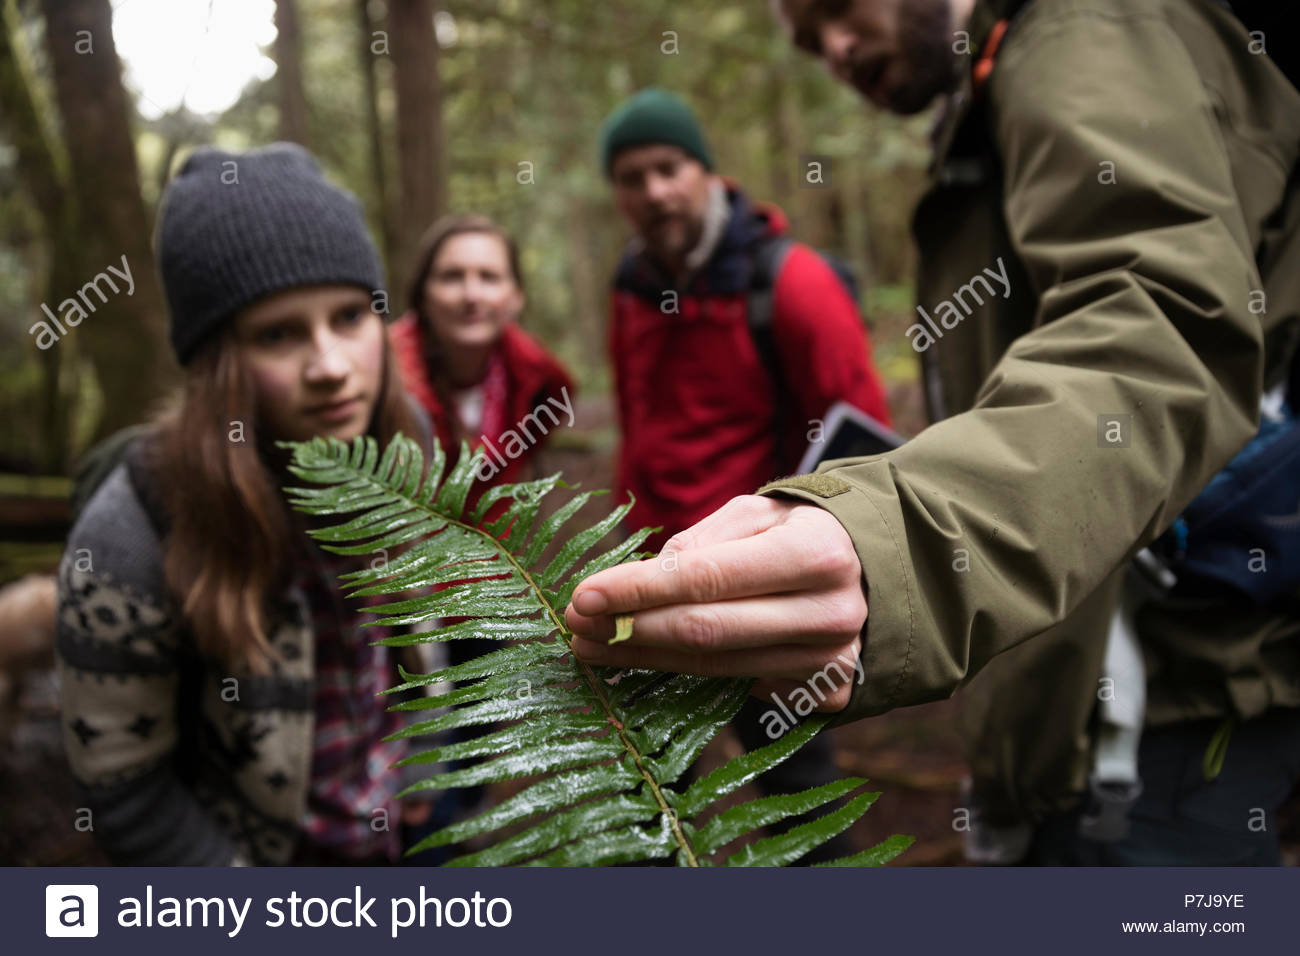 Trail guide and family hiking, exploring in woods Stock Photo